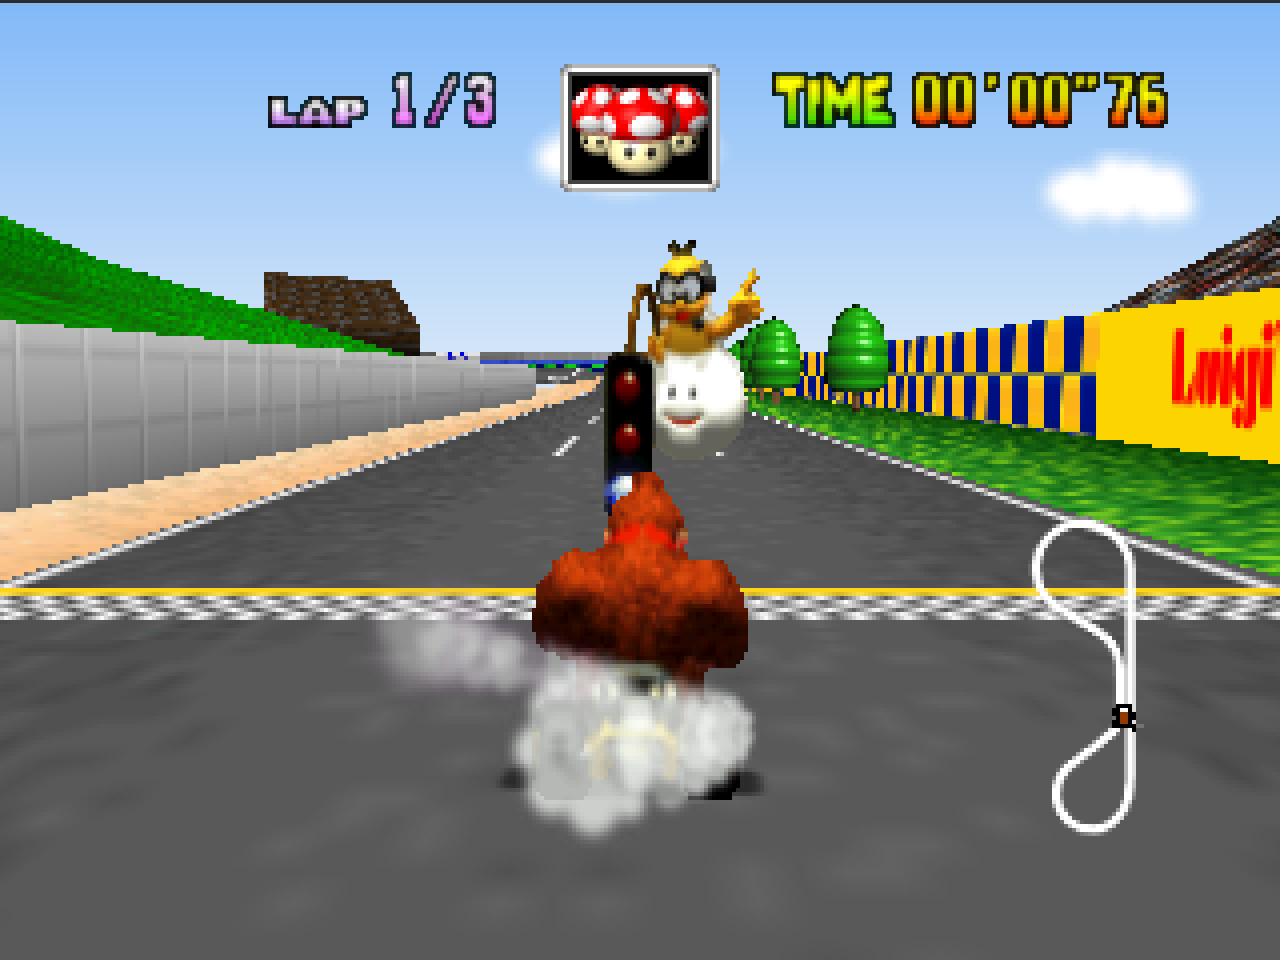 https://s3.eu-west-3.amazonaws.com/games.anthony-dessalles.com/Mario Kart 64 N64 2020 - Screenshots/Mario Kart 64-201118-215832.png